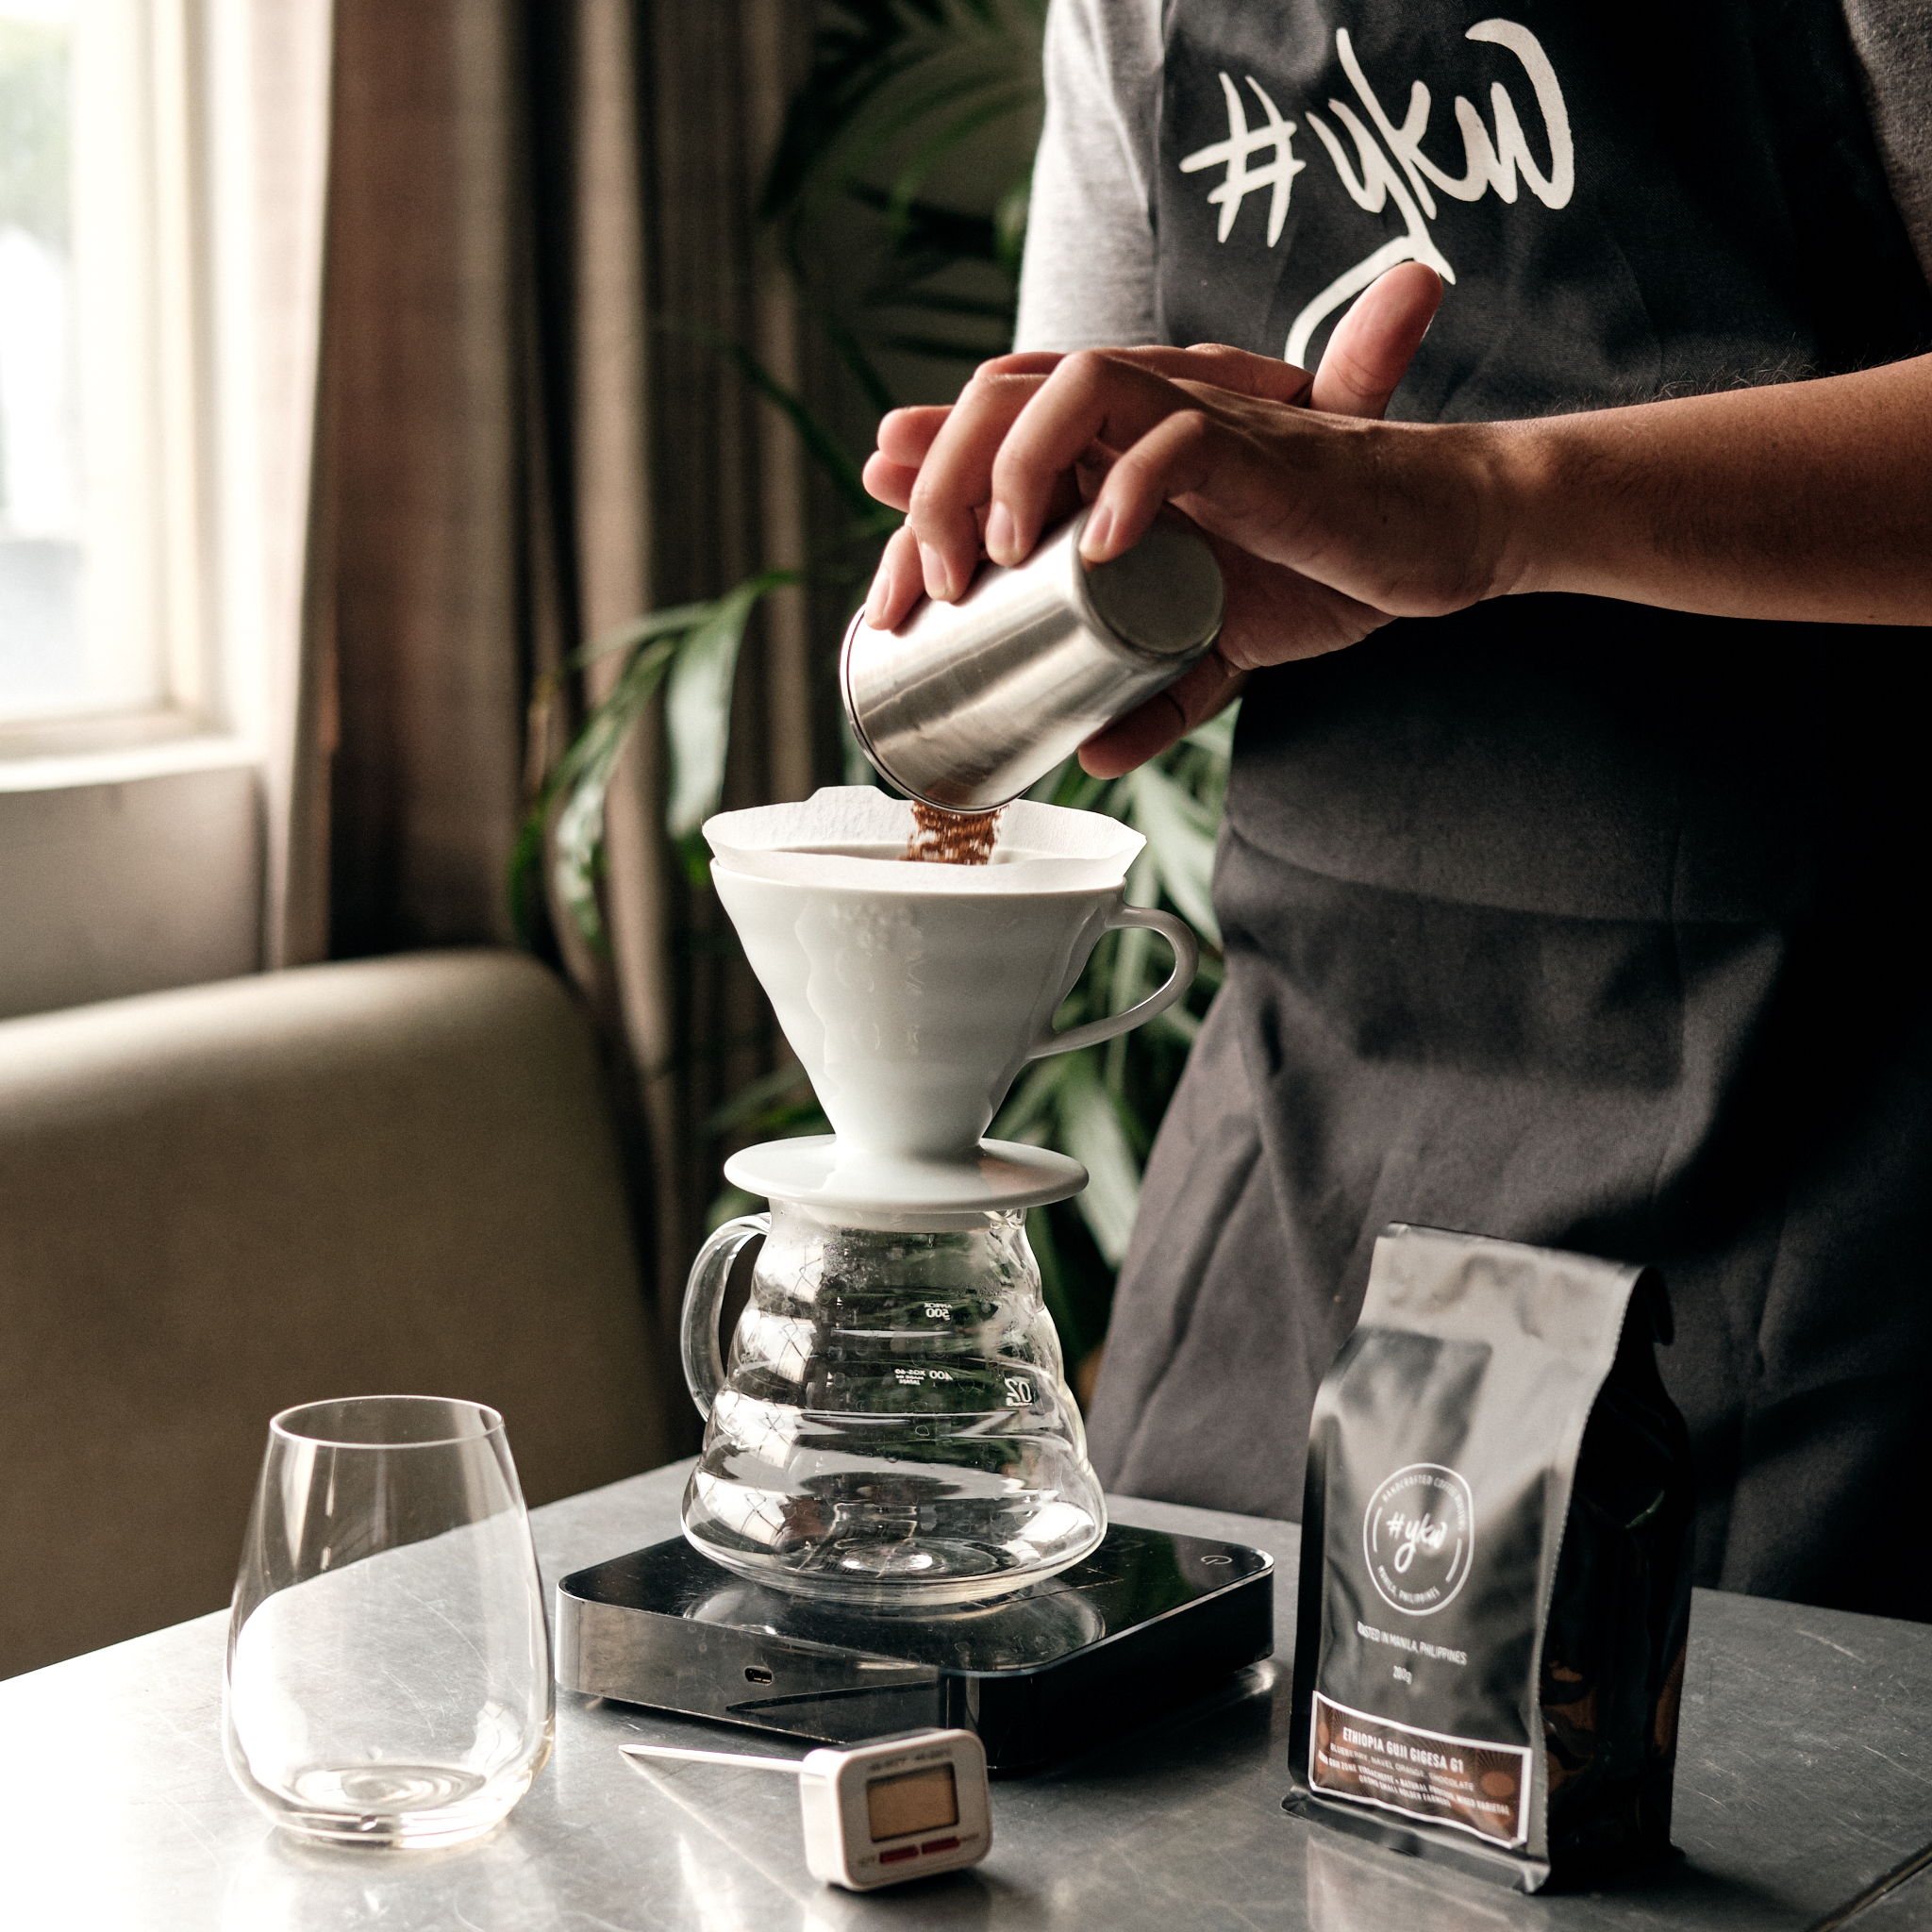 Brewing 101 - What We Learn· Introduction and appreciation to specialty coffee· Introduction to several brewing methods· Coffee tasting· Pour over application· Tasting and evaluating